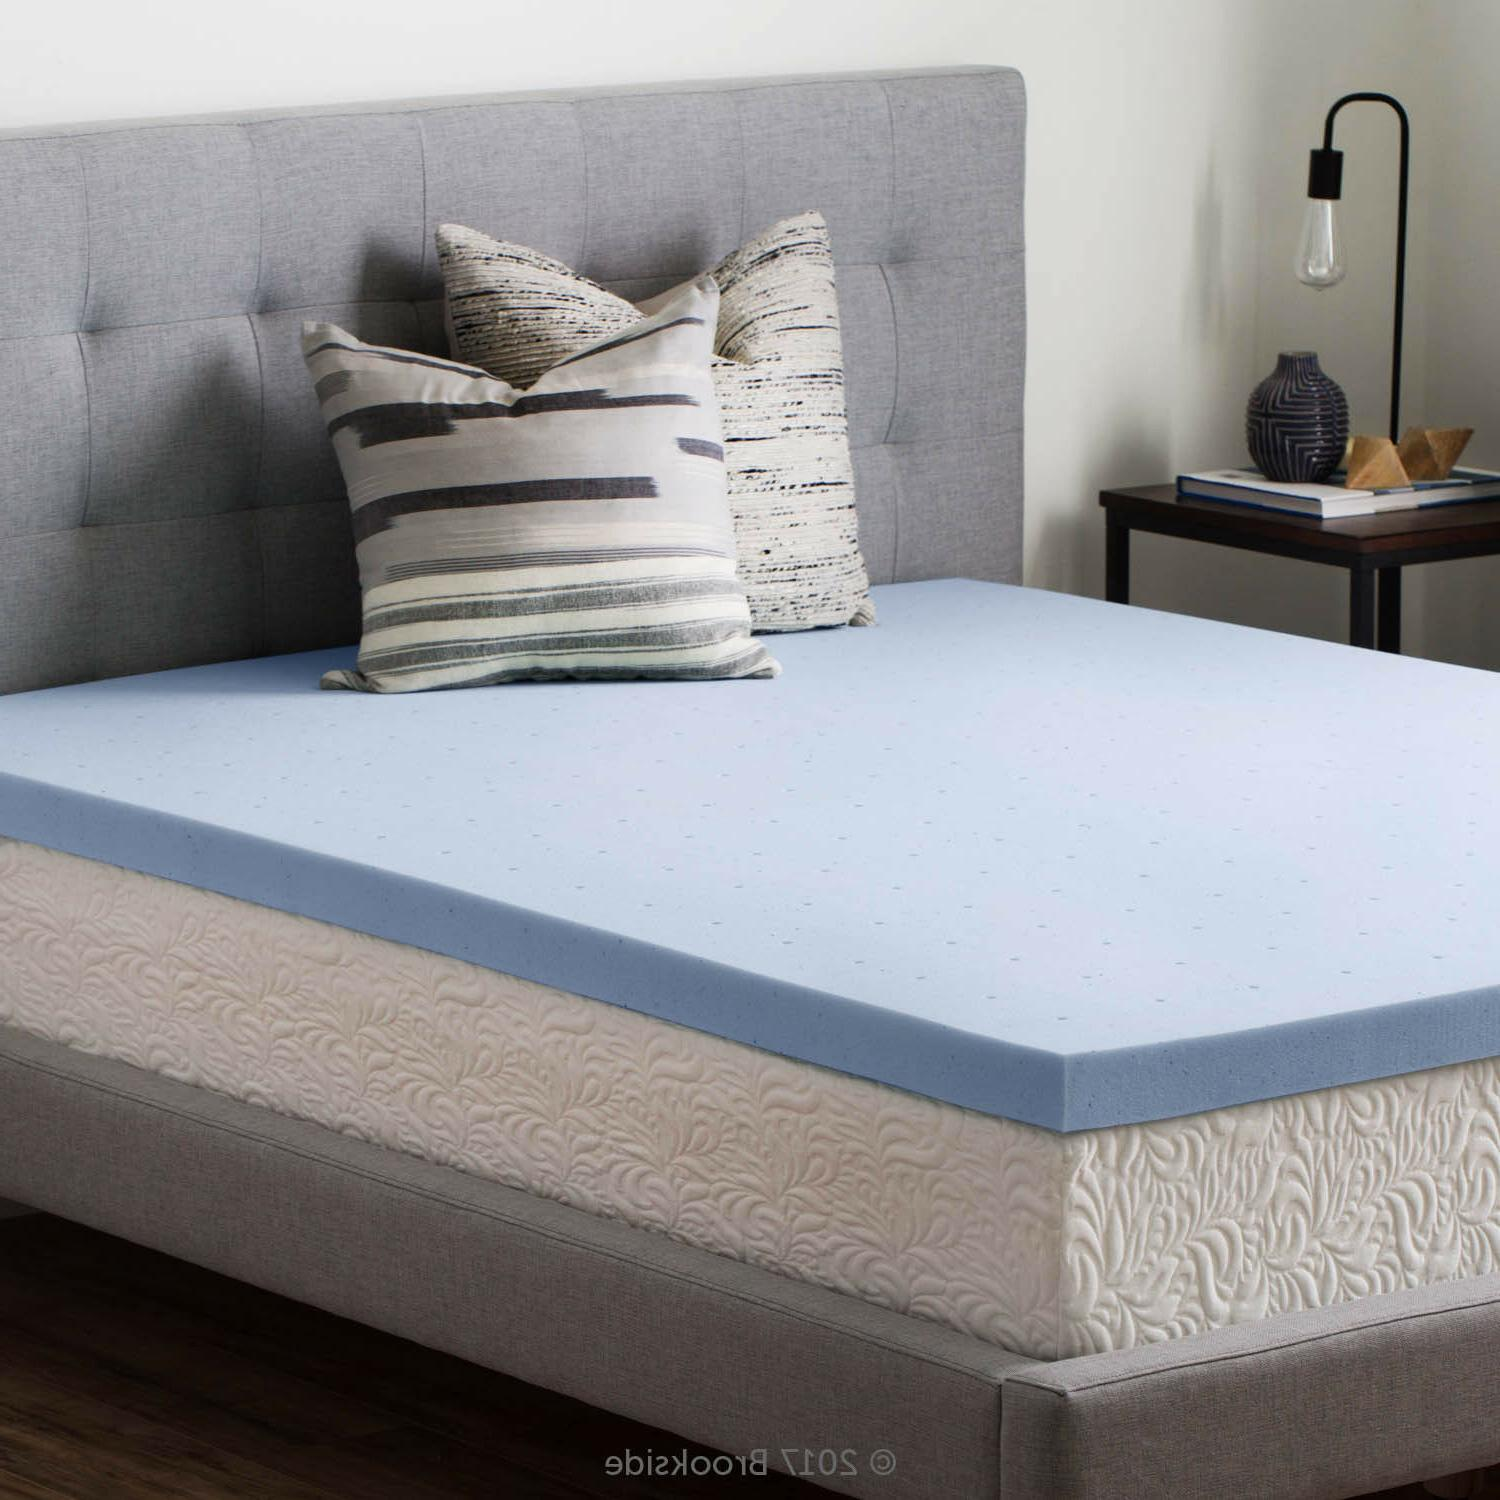 2.5 Inch Memory Foam Mattress Topper - and King